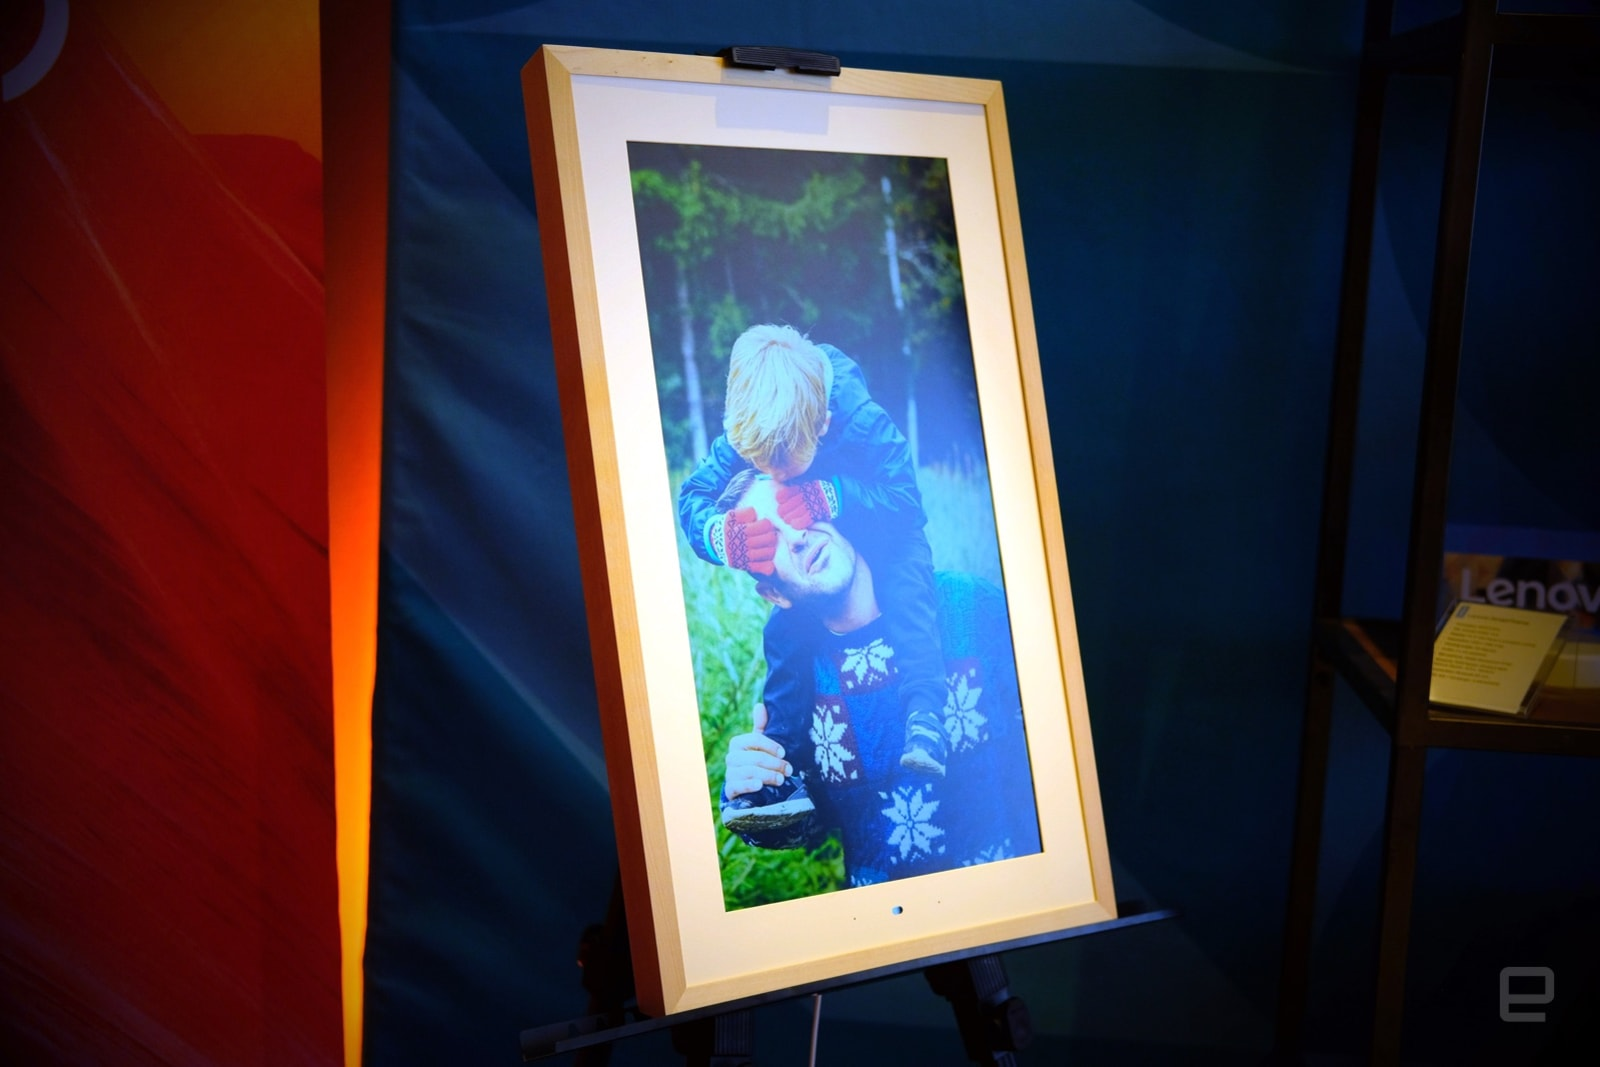 Lenovo's Smart Frame puts your digital photos on a 21.9-inch canvas